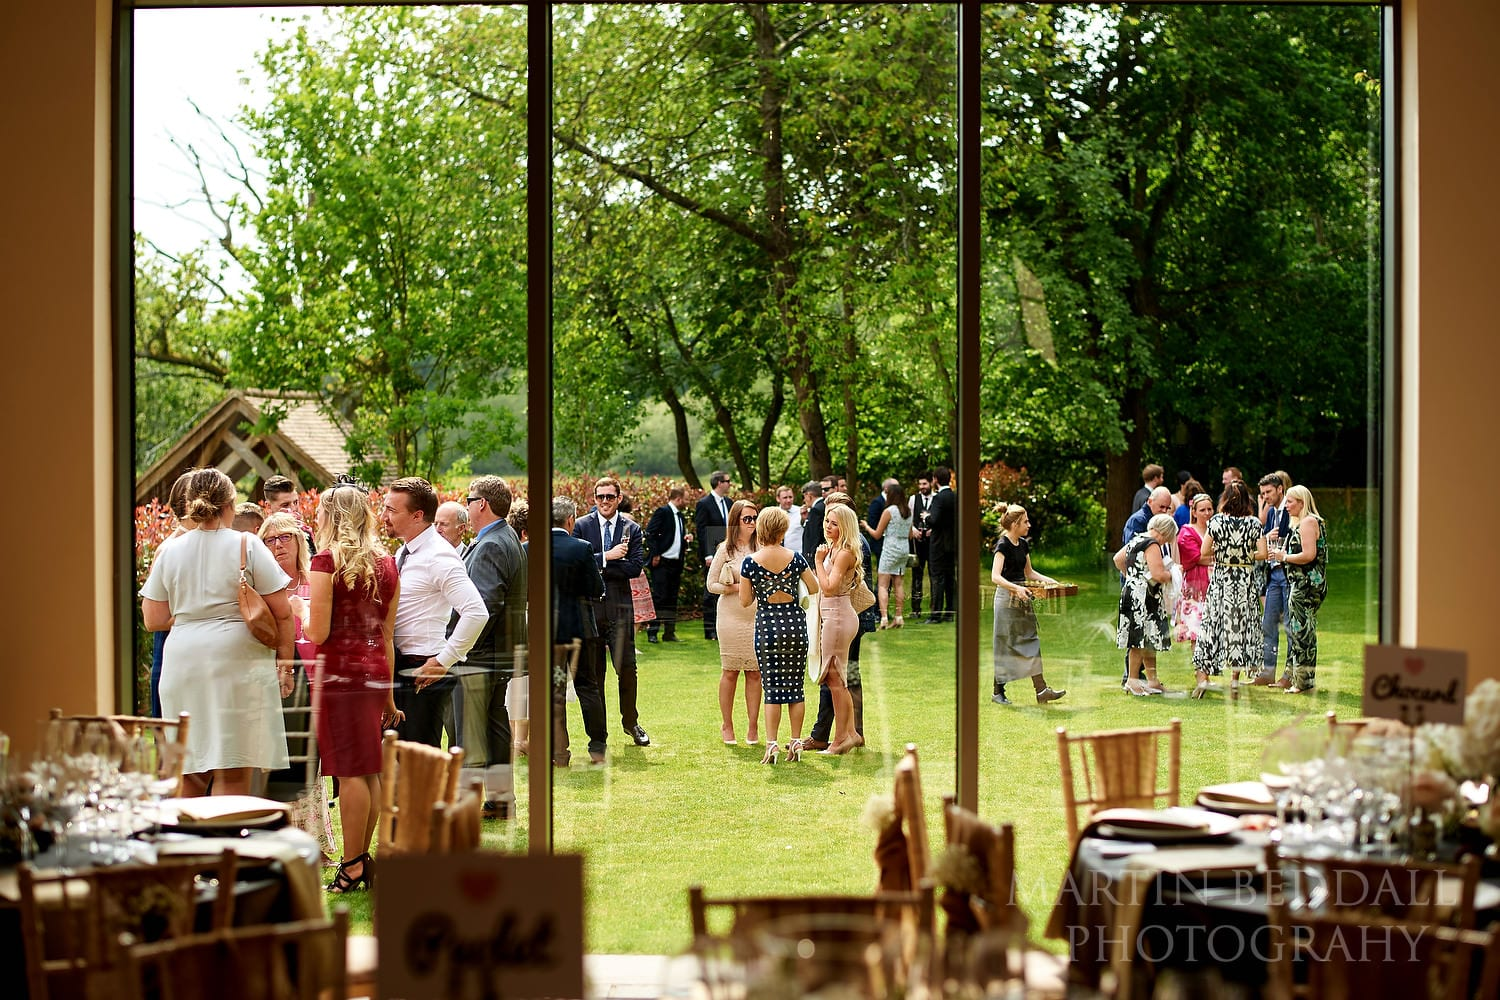 Guests on the lawn at Millbridge Court wedding reception